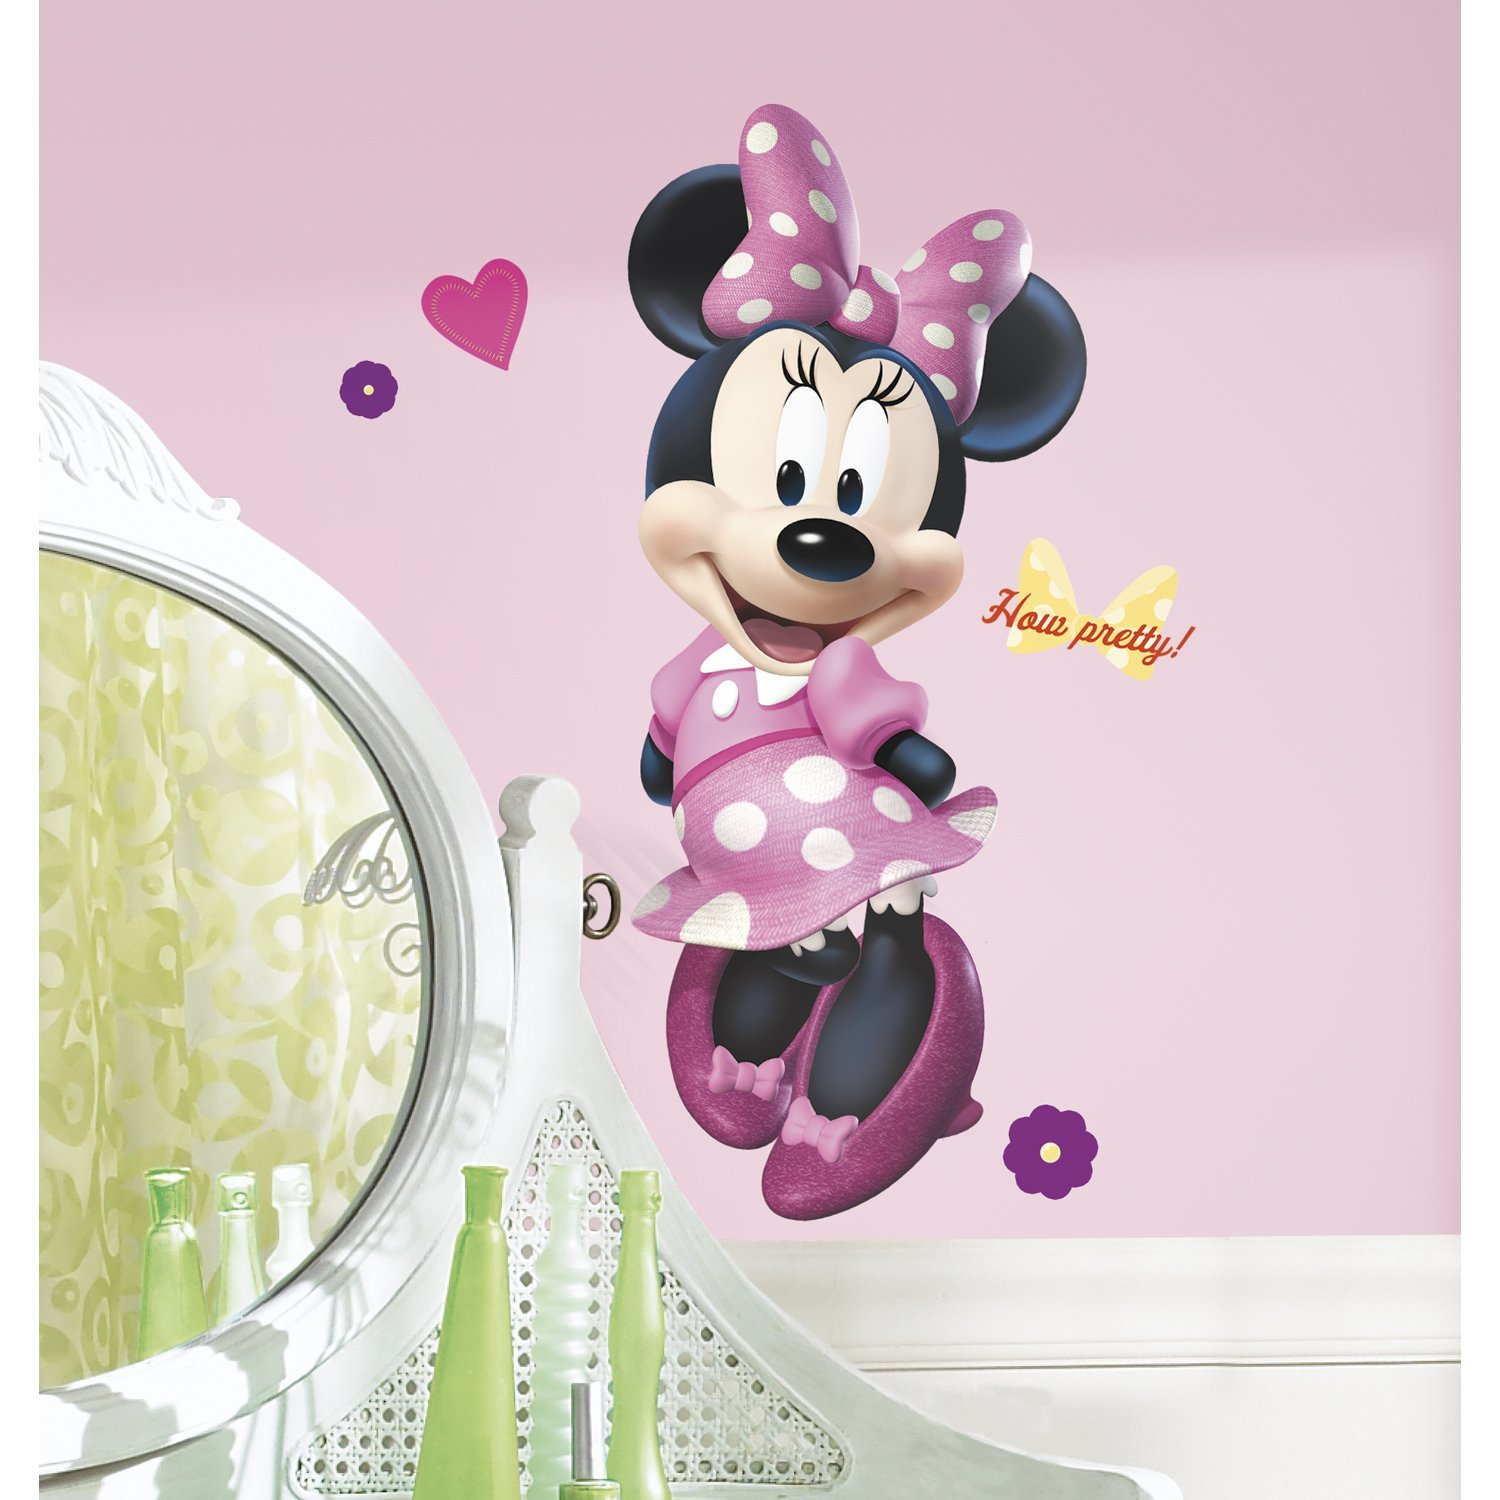 mickey-and-friends-wall-decal.jpg